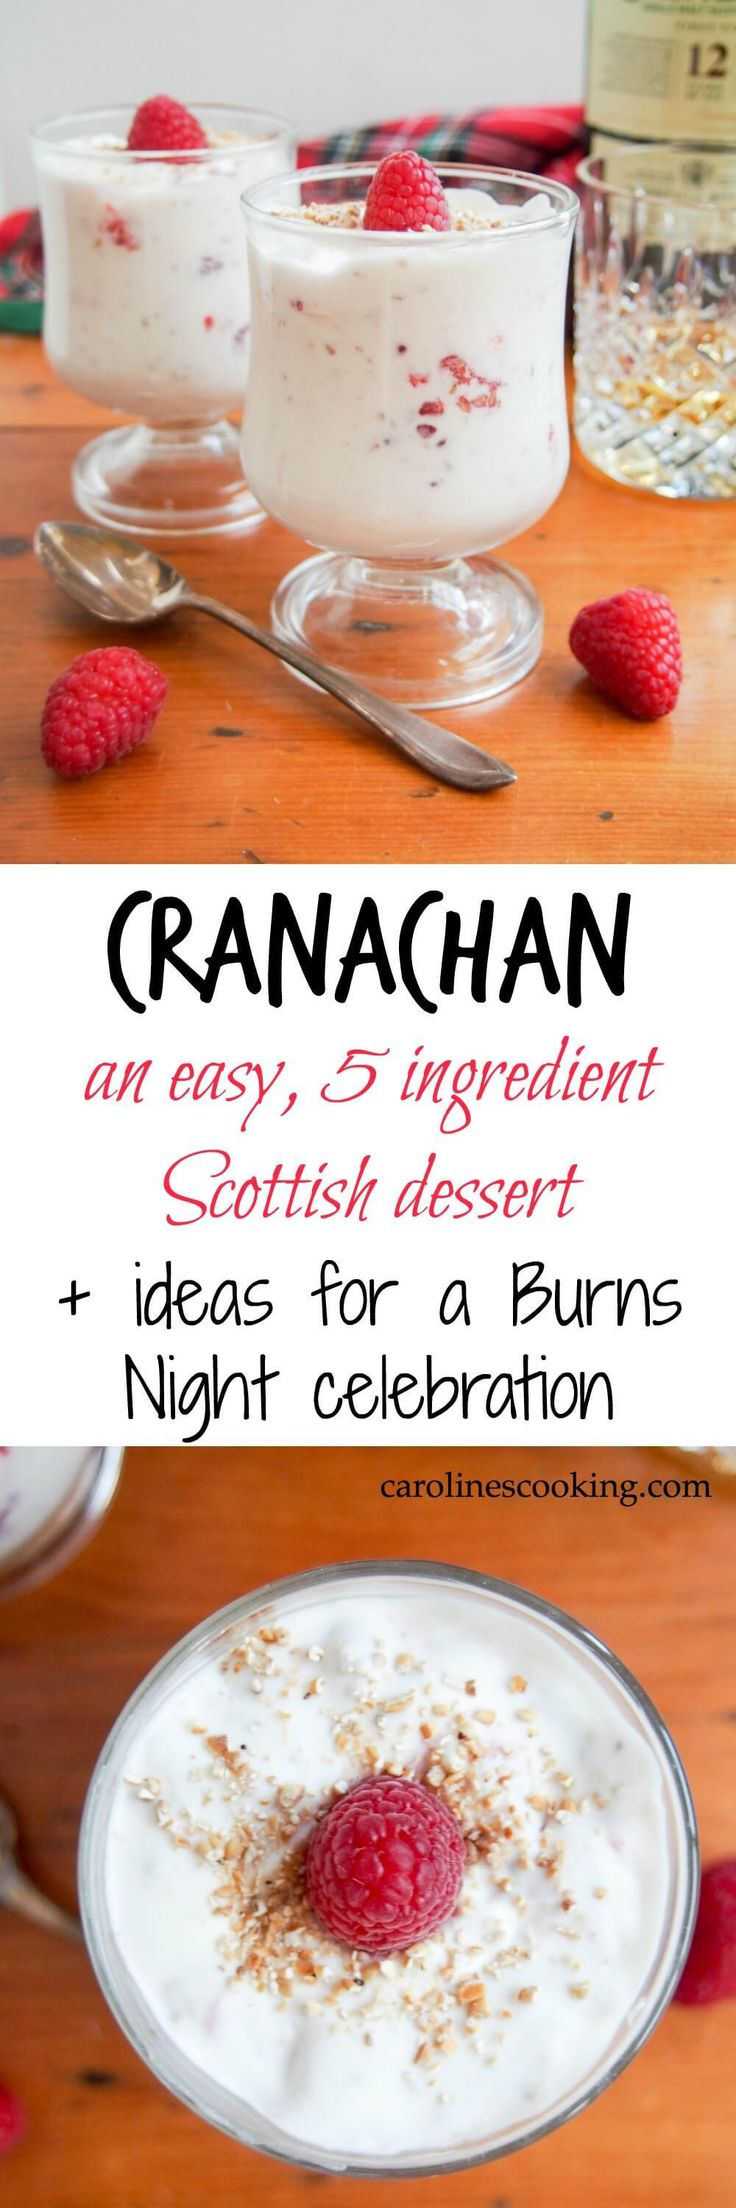 Cranachan is a delicious, easy 5 ingredient dessert (cream, oatmeal, whisky, honey & raspberries) that's perfect to end your Burns Night feast, or any time. #scottishfood #dessert #glutenfree